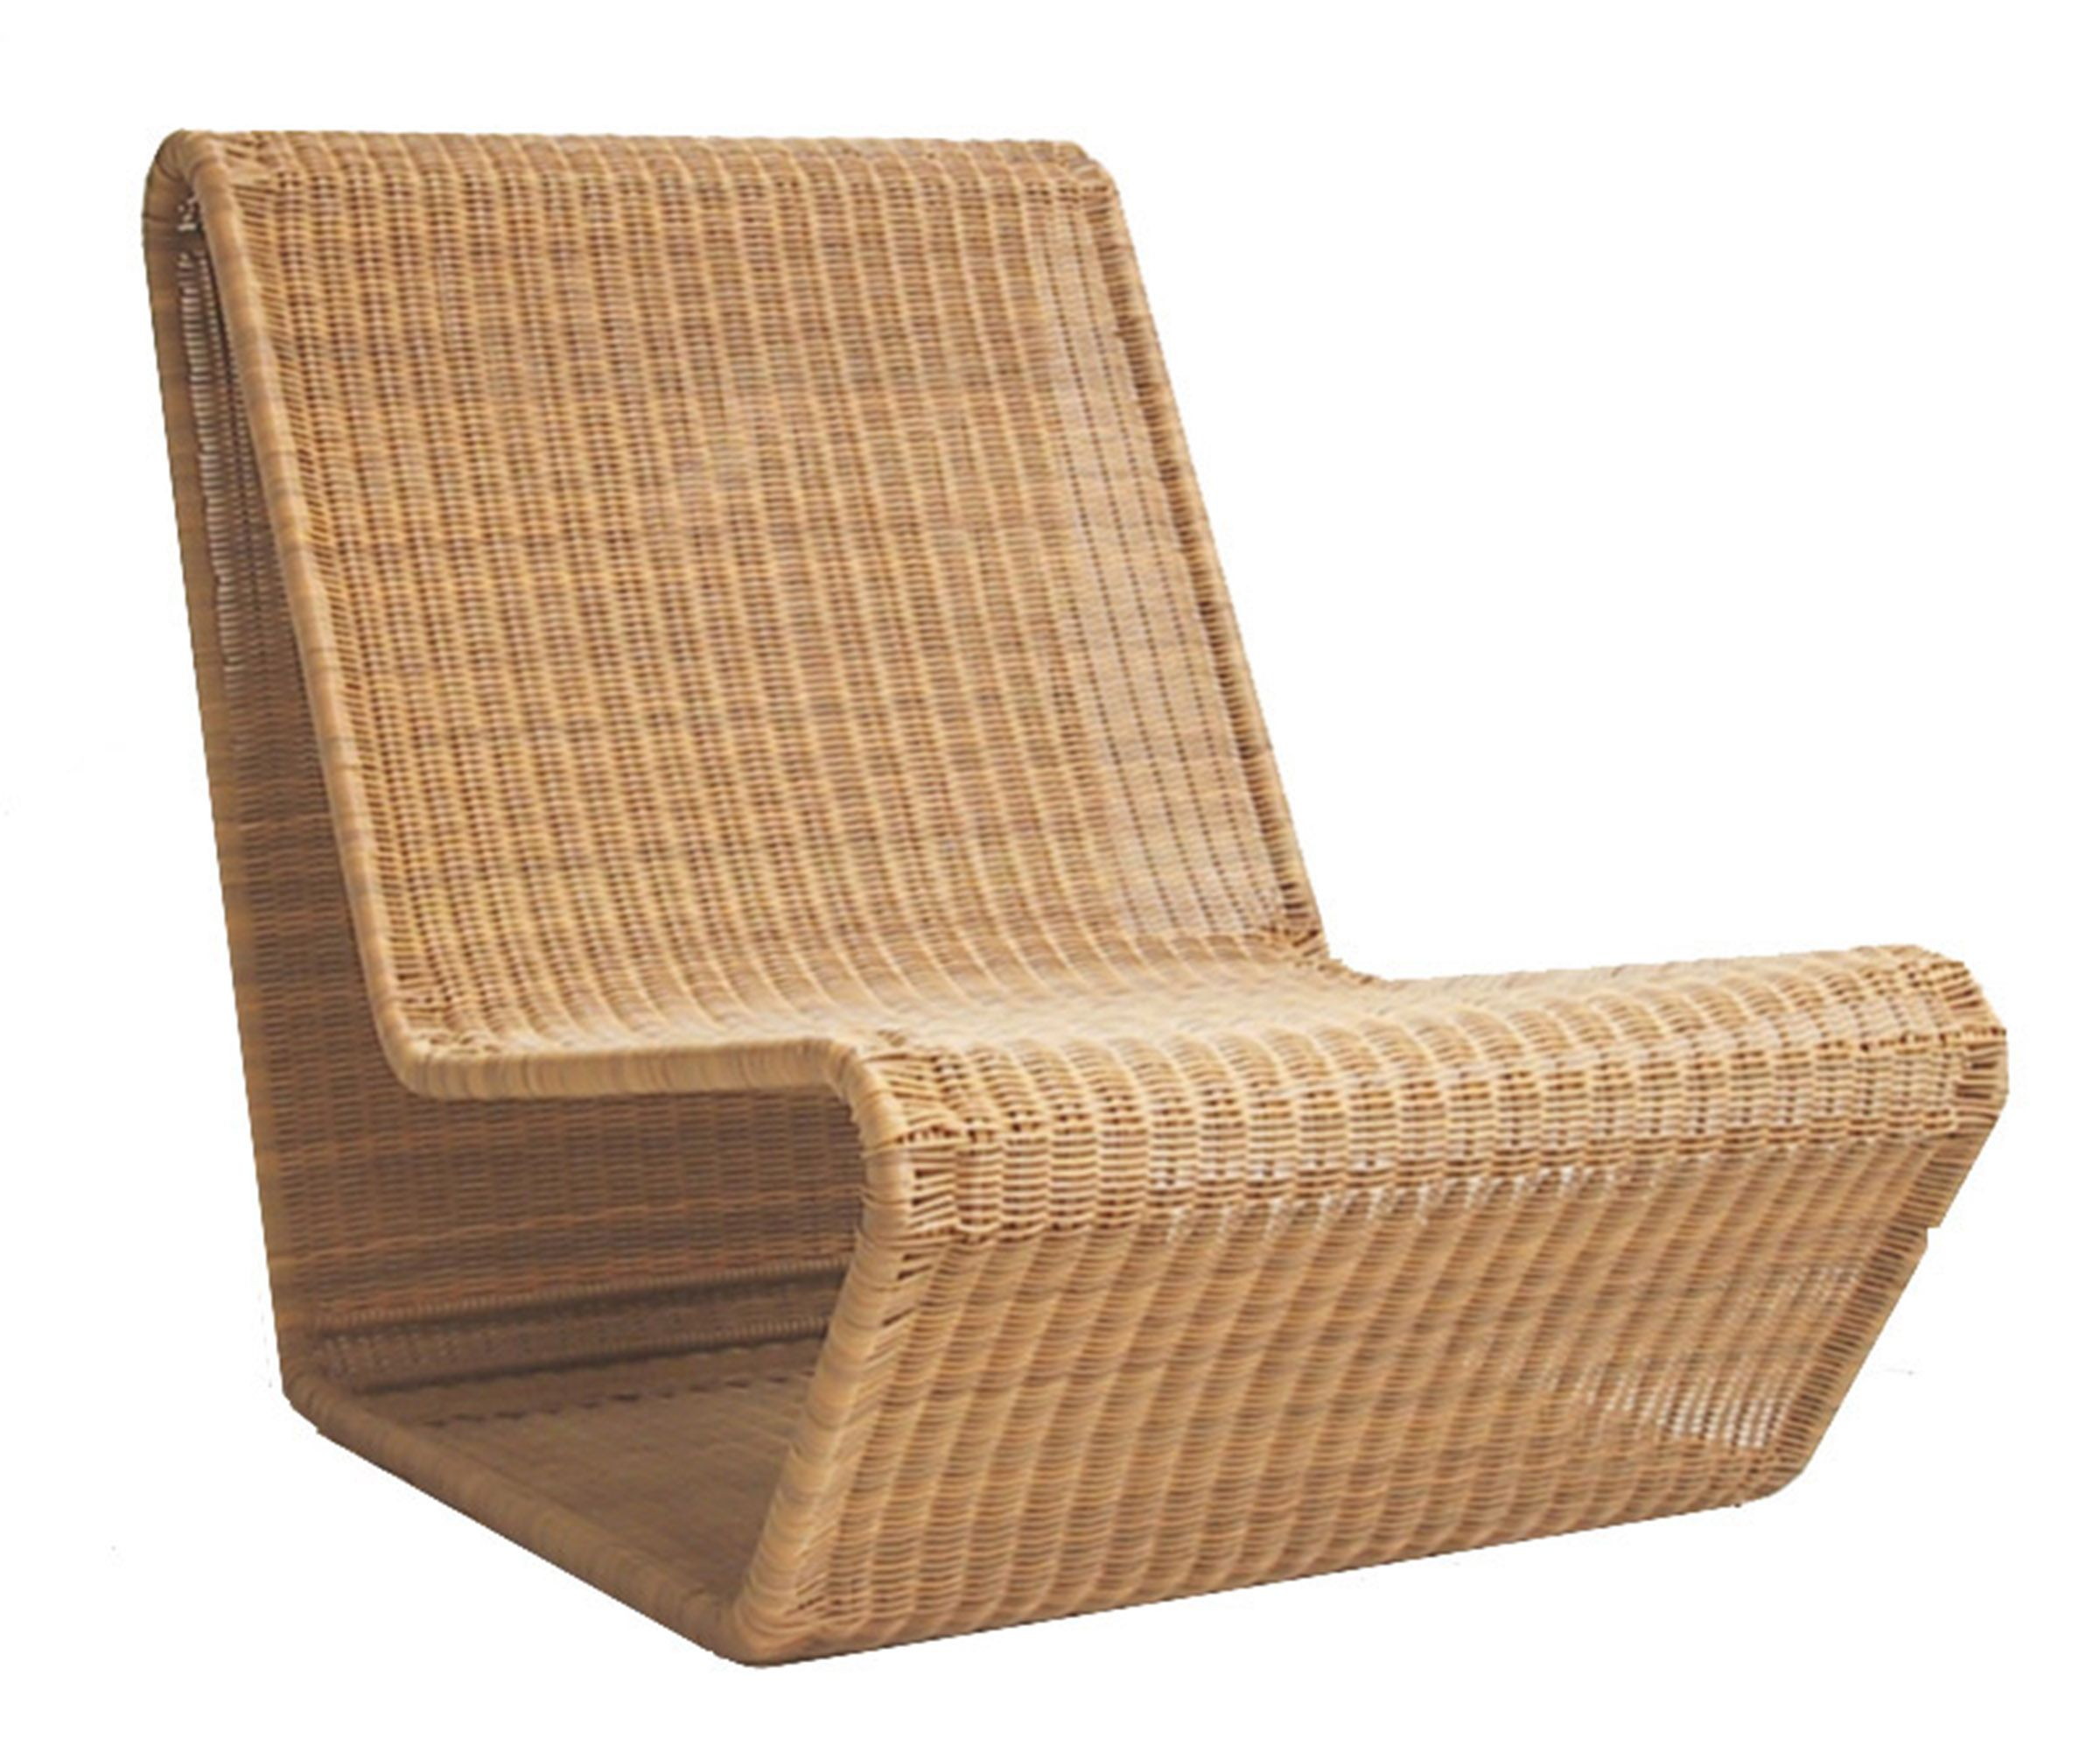 Vintage Fong Brothersu0027/Tropi Cal Design By Danny Ho Fong, Circa Stainless  Steel Frame With Woven Resin Wicker. The Wave Lounge Chair Epitomizes  Mid Centuryu2026